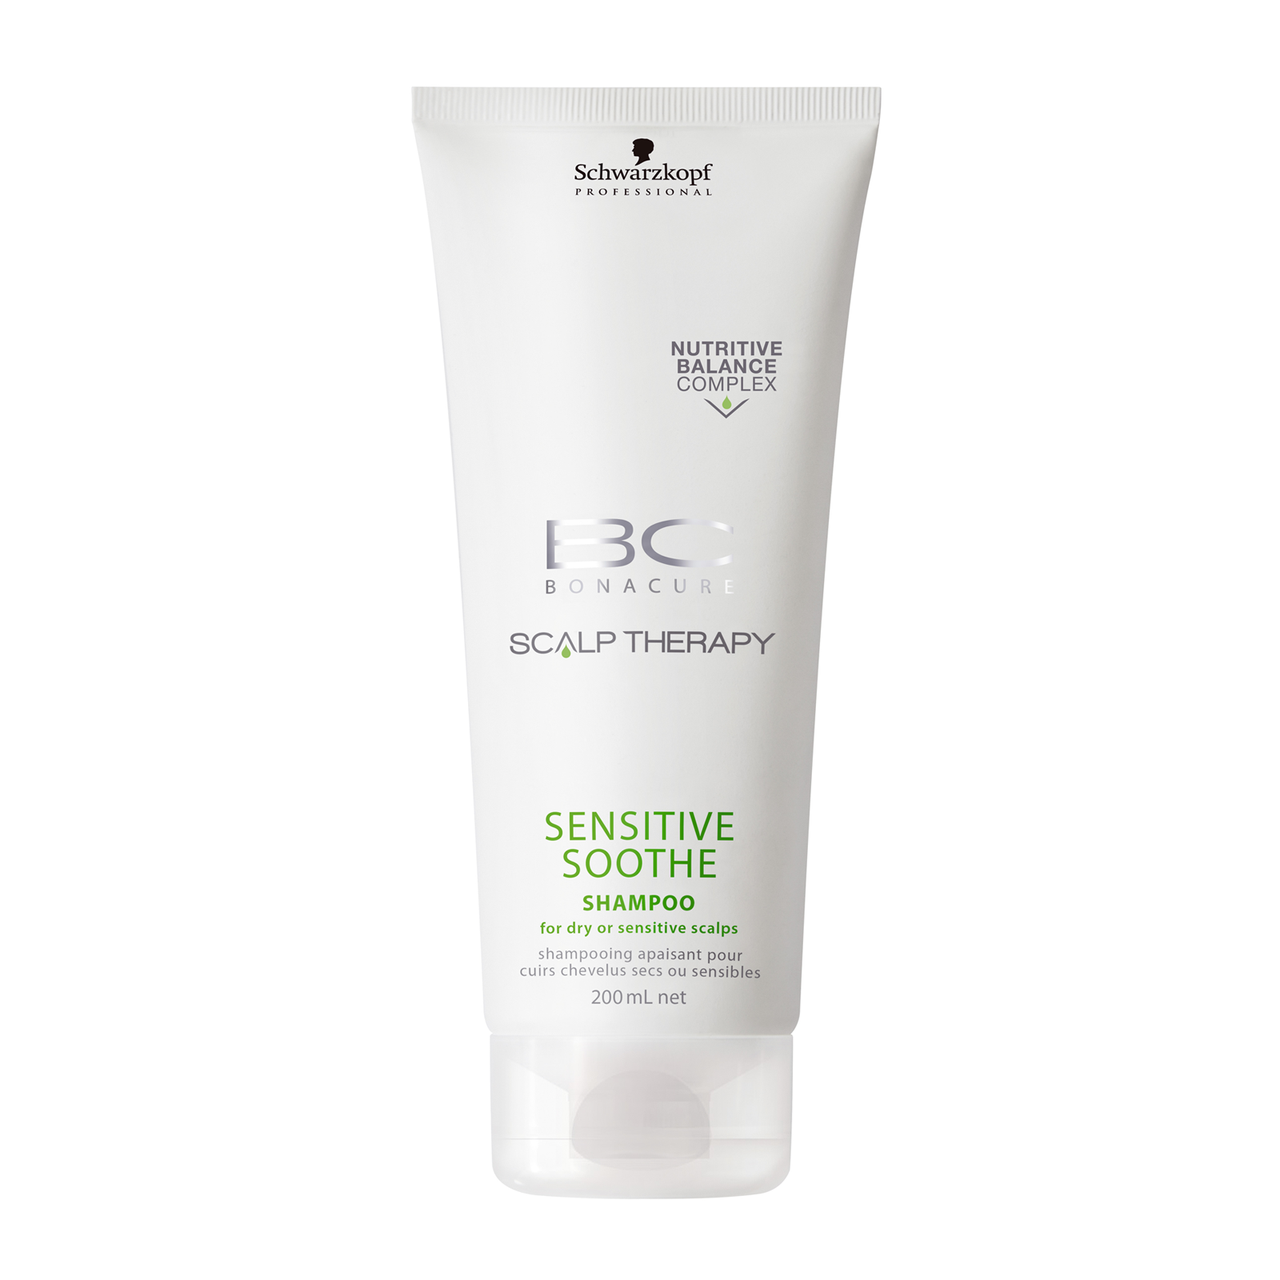 Успокаивающий шампунь Schwarzkopf Bonacure Scalp Therapy Sensitive Soothe Shampoo 200 мл